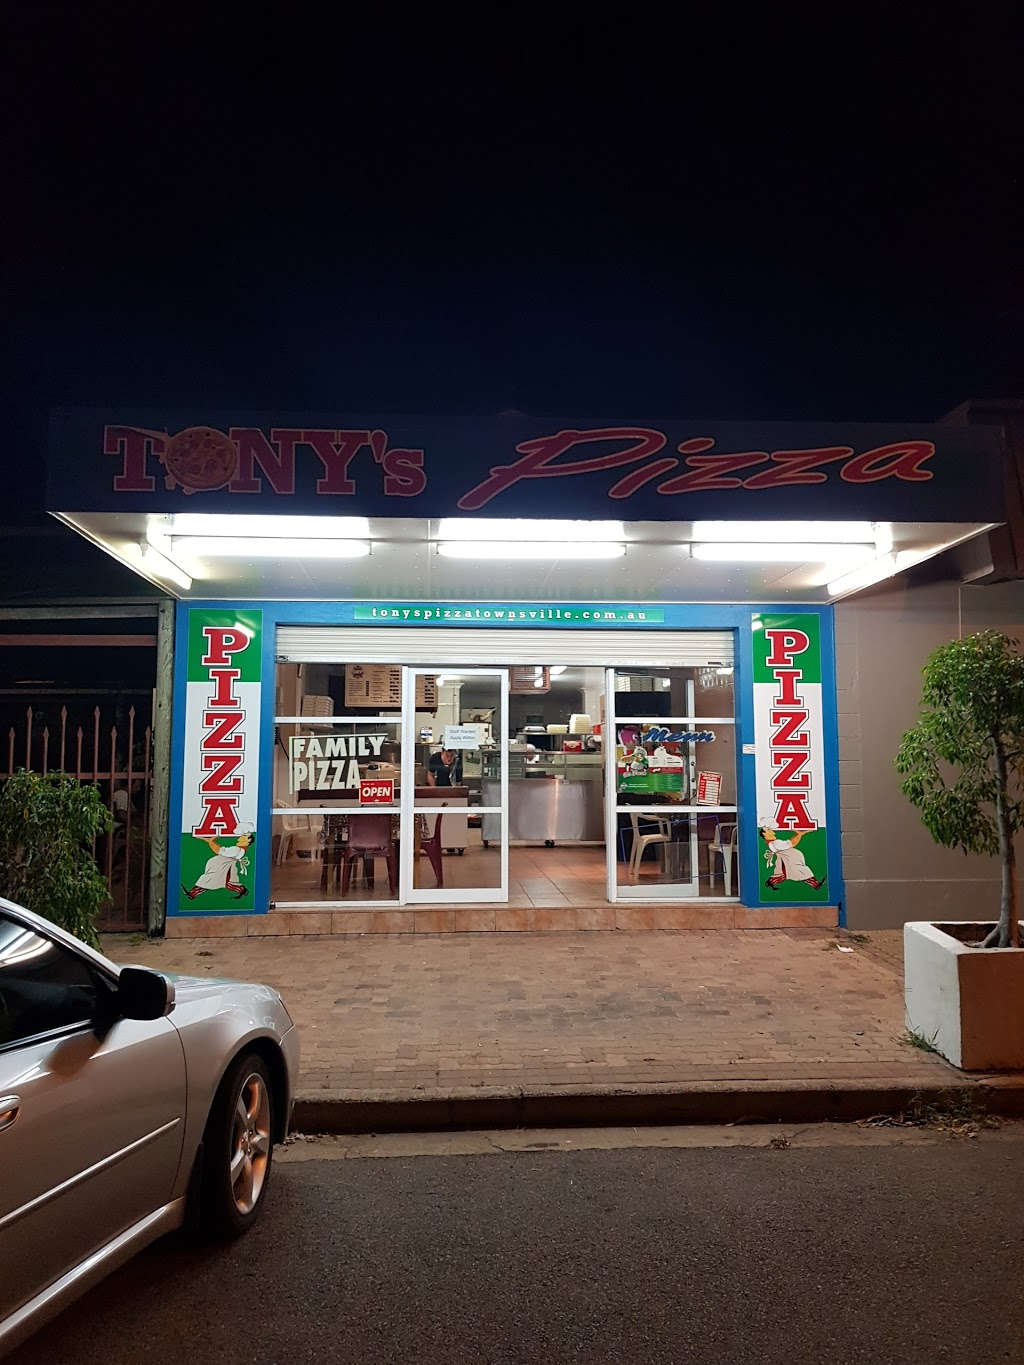 Tonys Pizza | store | 27 Kennedy St, North Ward QLD 4810, Australia | 0747241330 OR +61 7 4724 1330